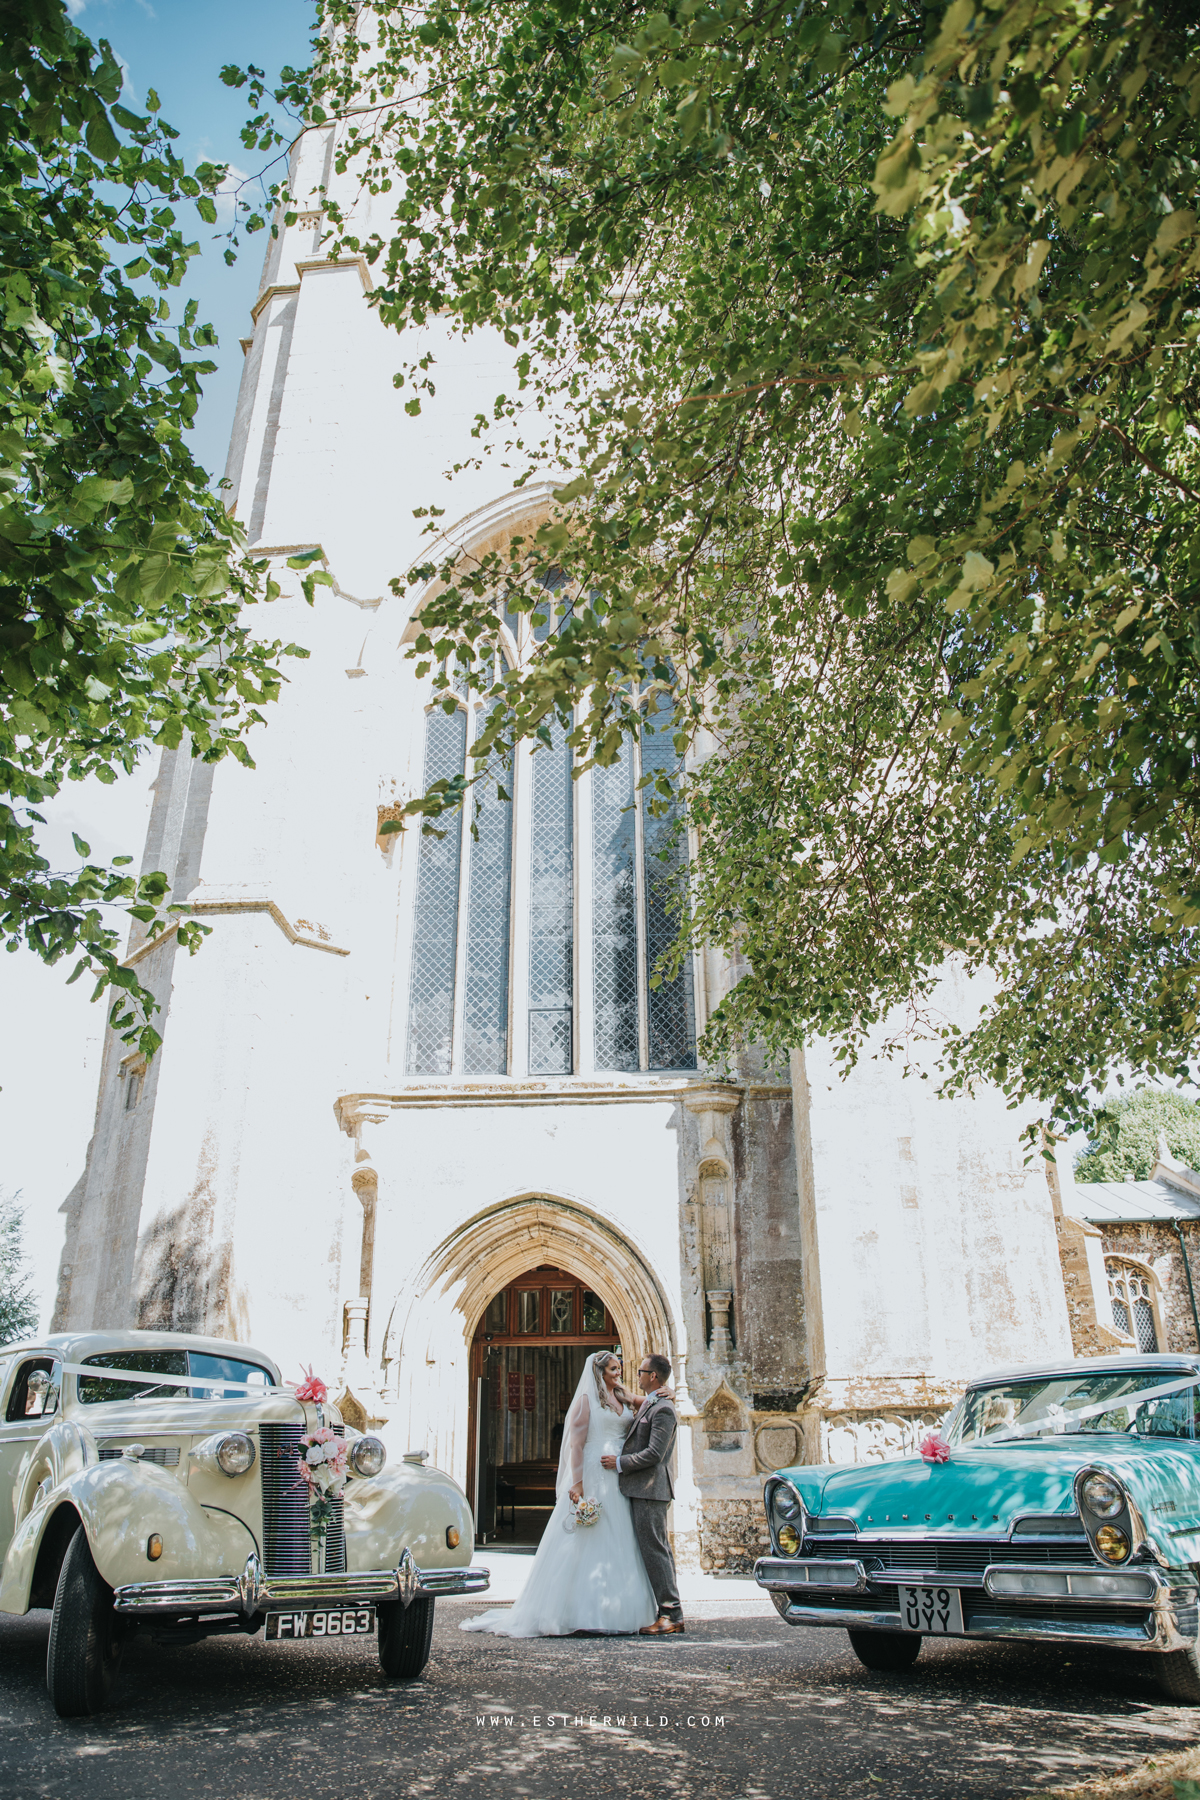 Swaffham_Wedding_Castle_Acre_Norfolk_Esther_Wild_Photographer_Wedding_Photography_3R8A1083.jpg